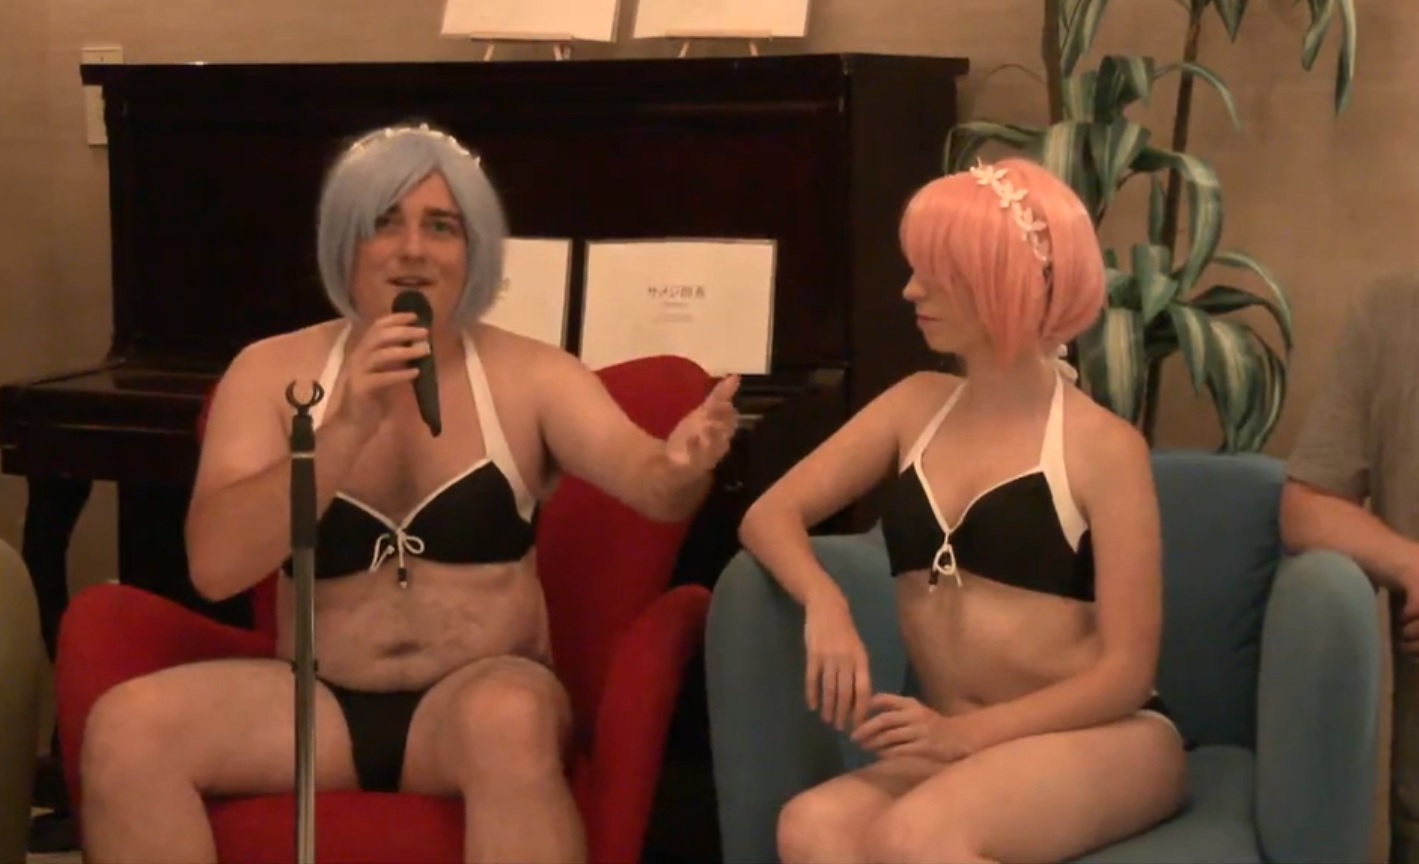 Palmer Luckey Talks About Adult VR While Wearing A Bikini